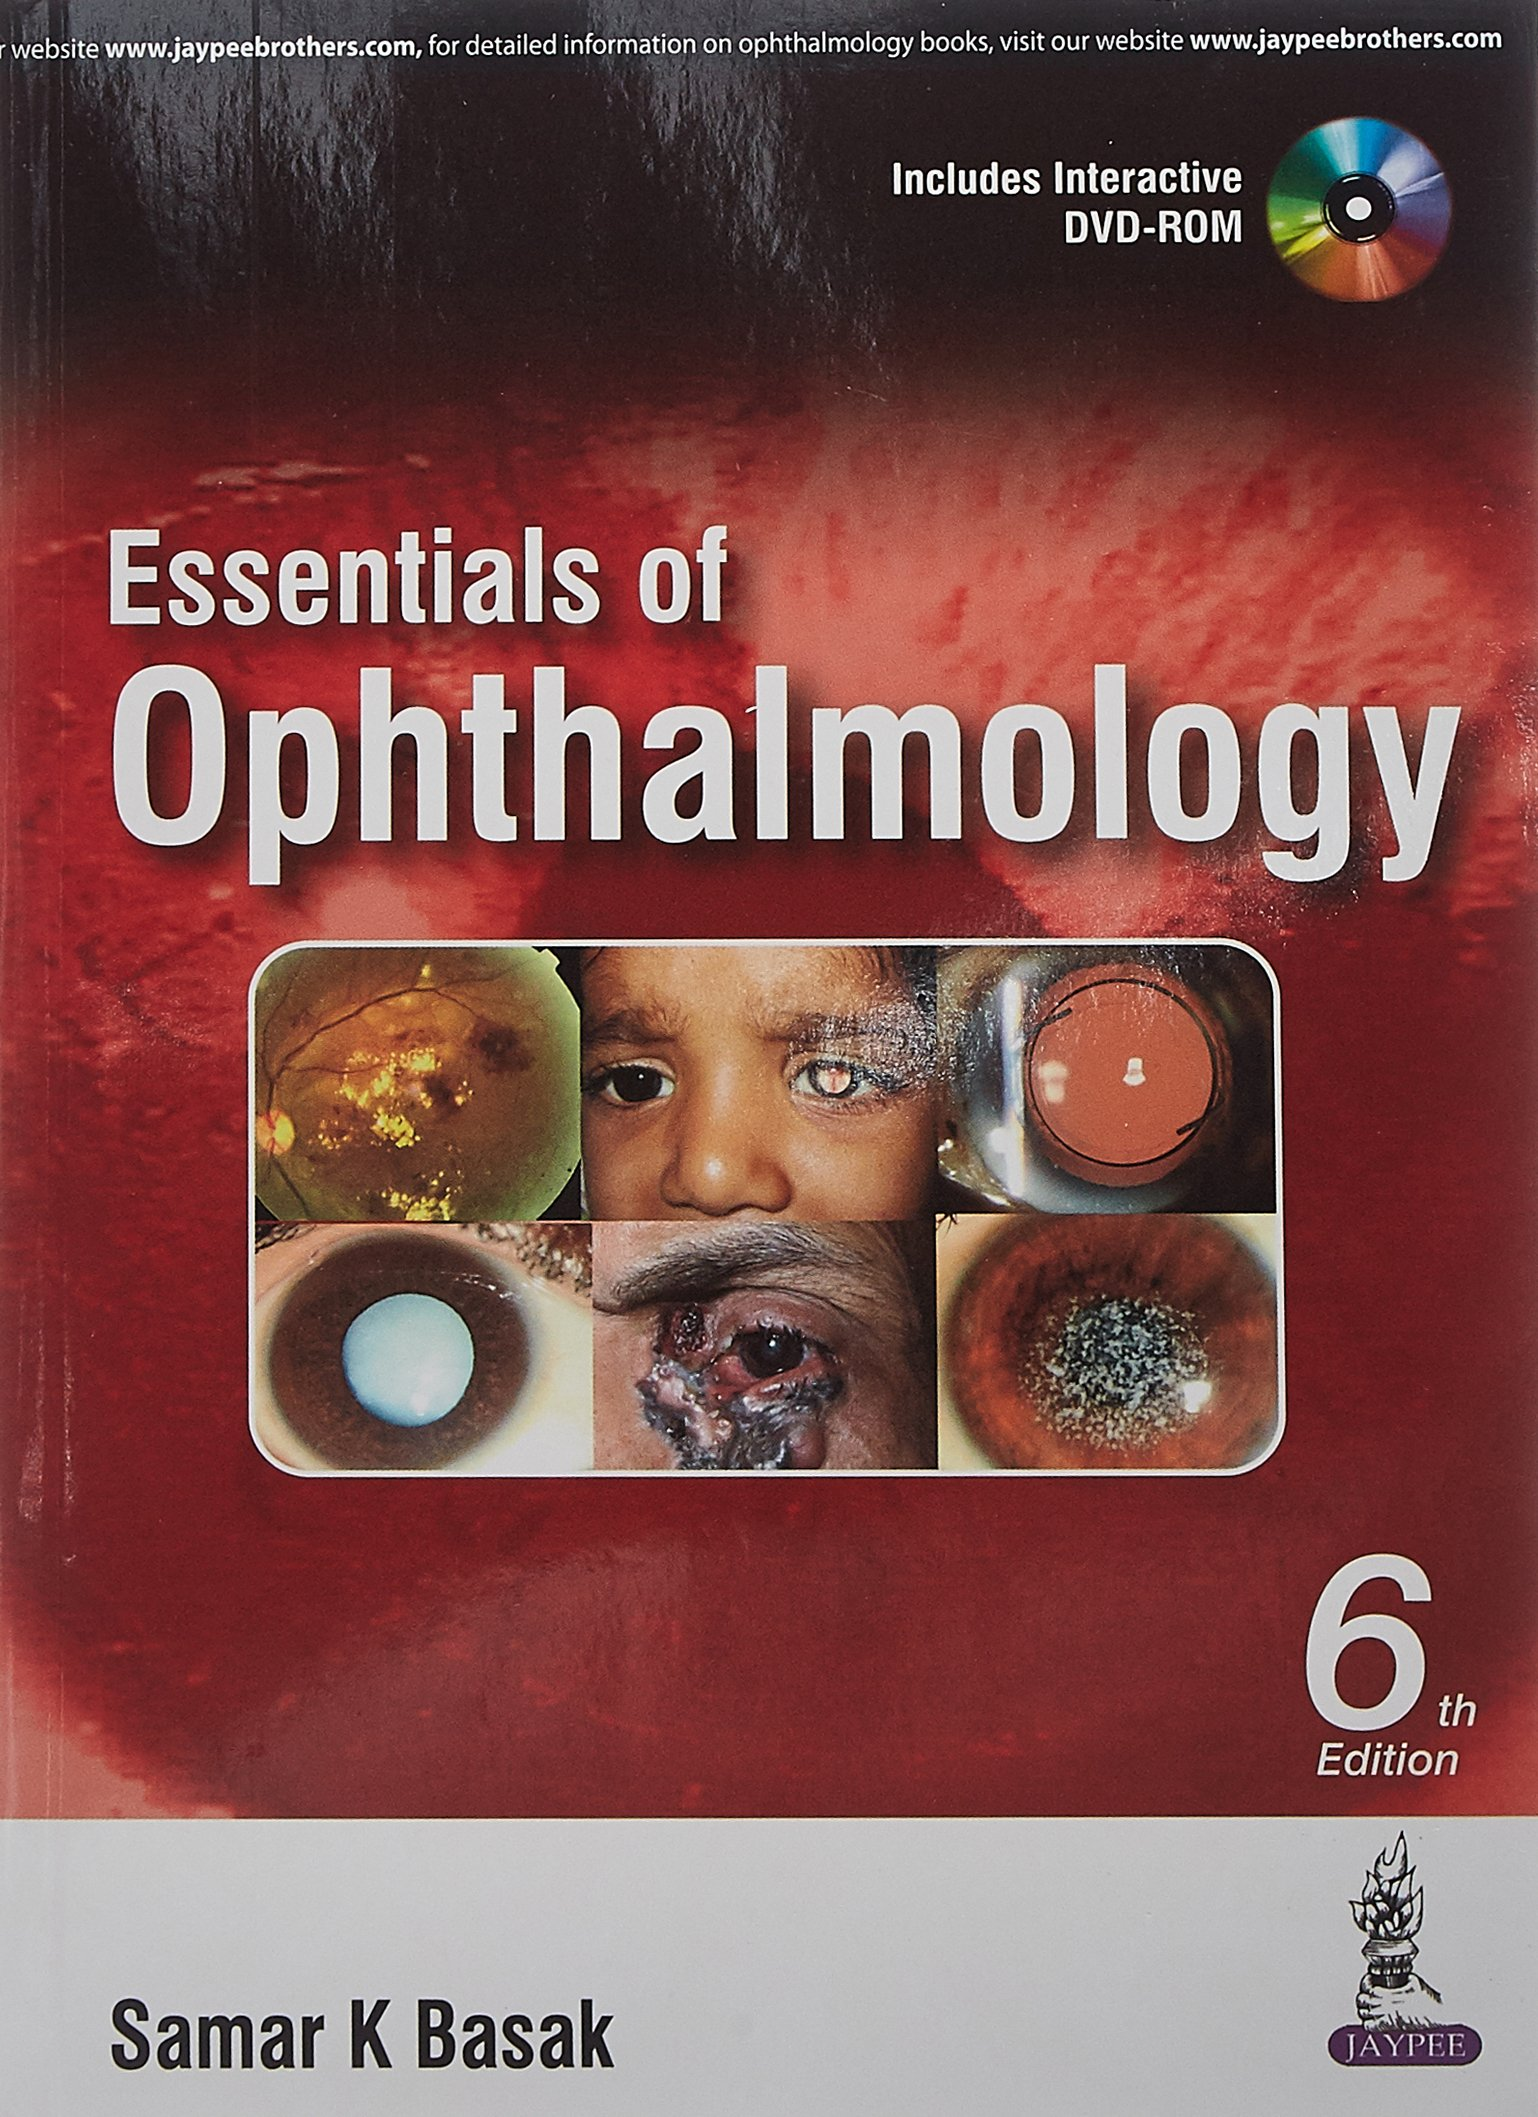 Buy Essentials Of Ophthalmology Book Online at Low Prices in India